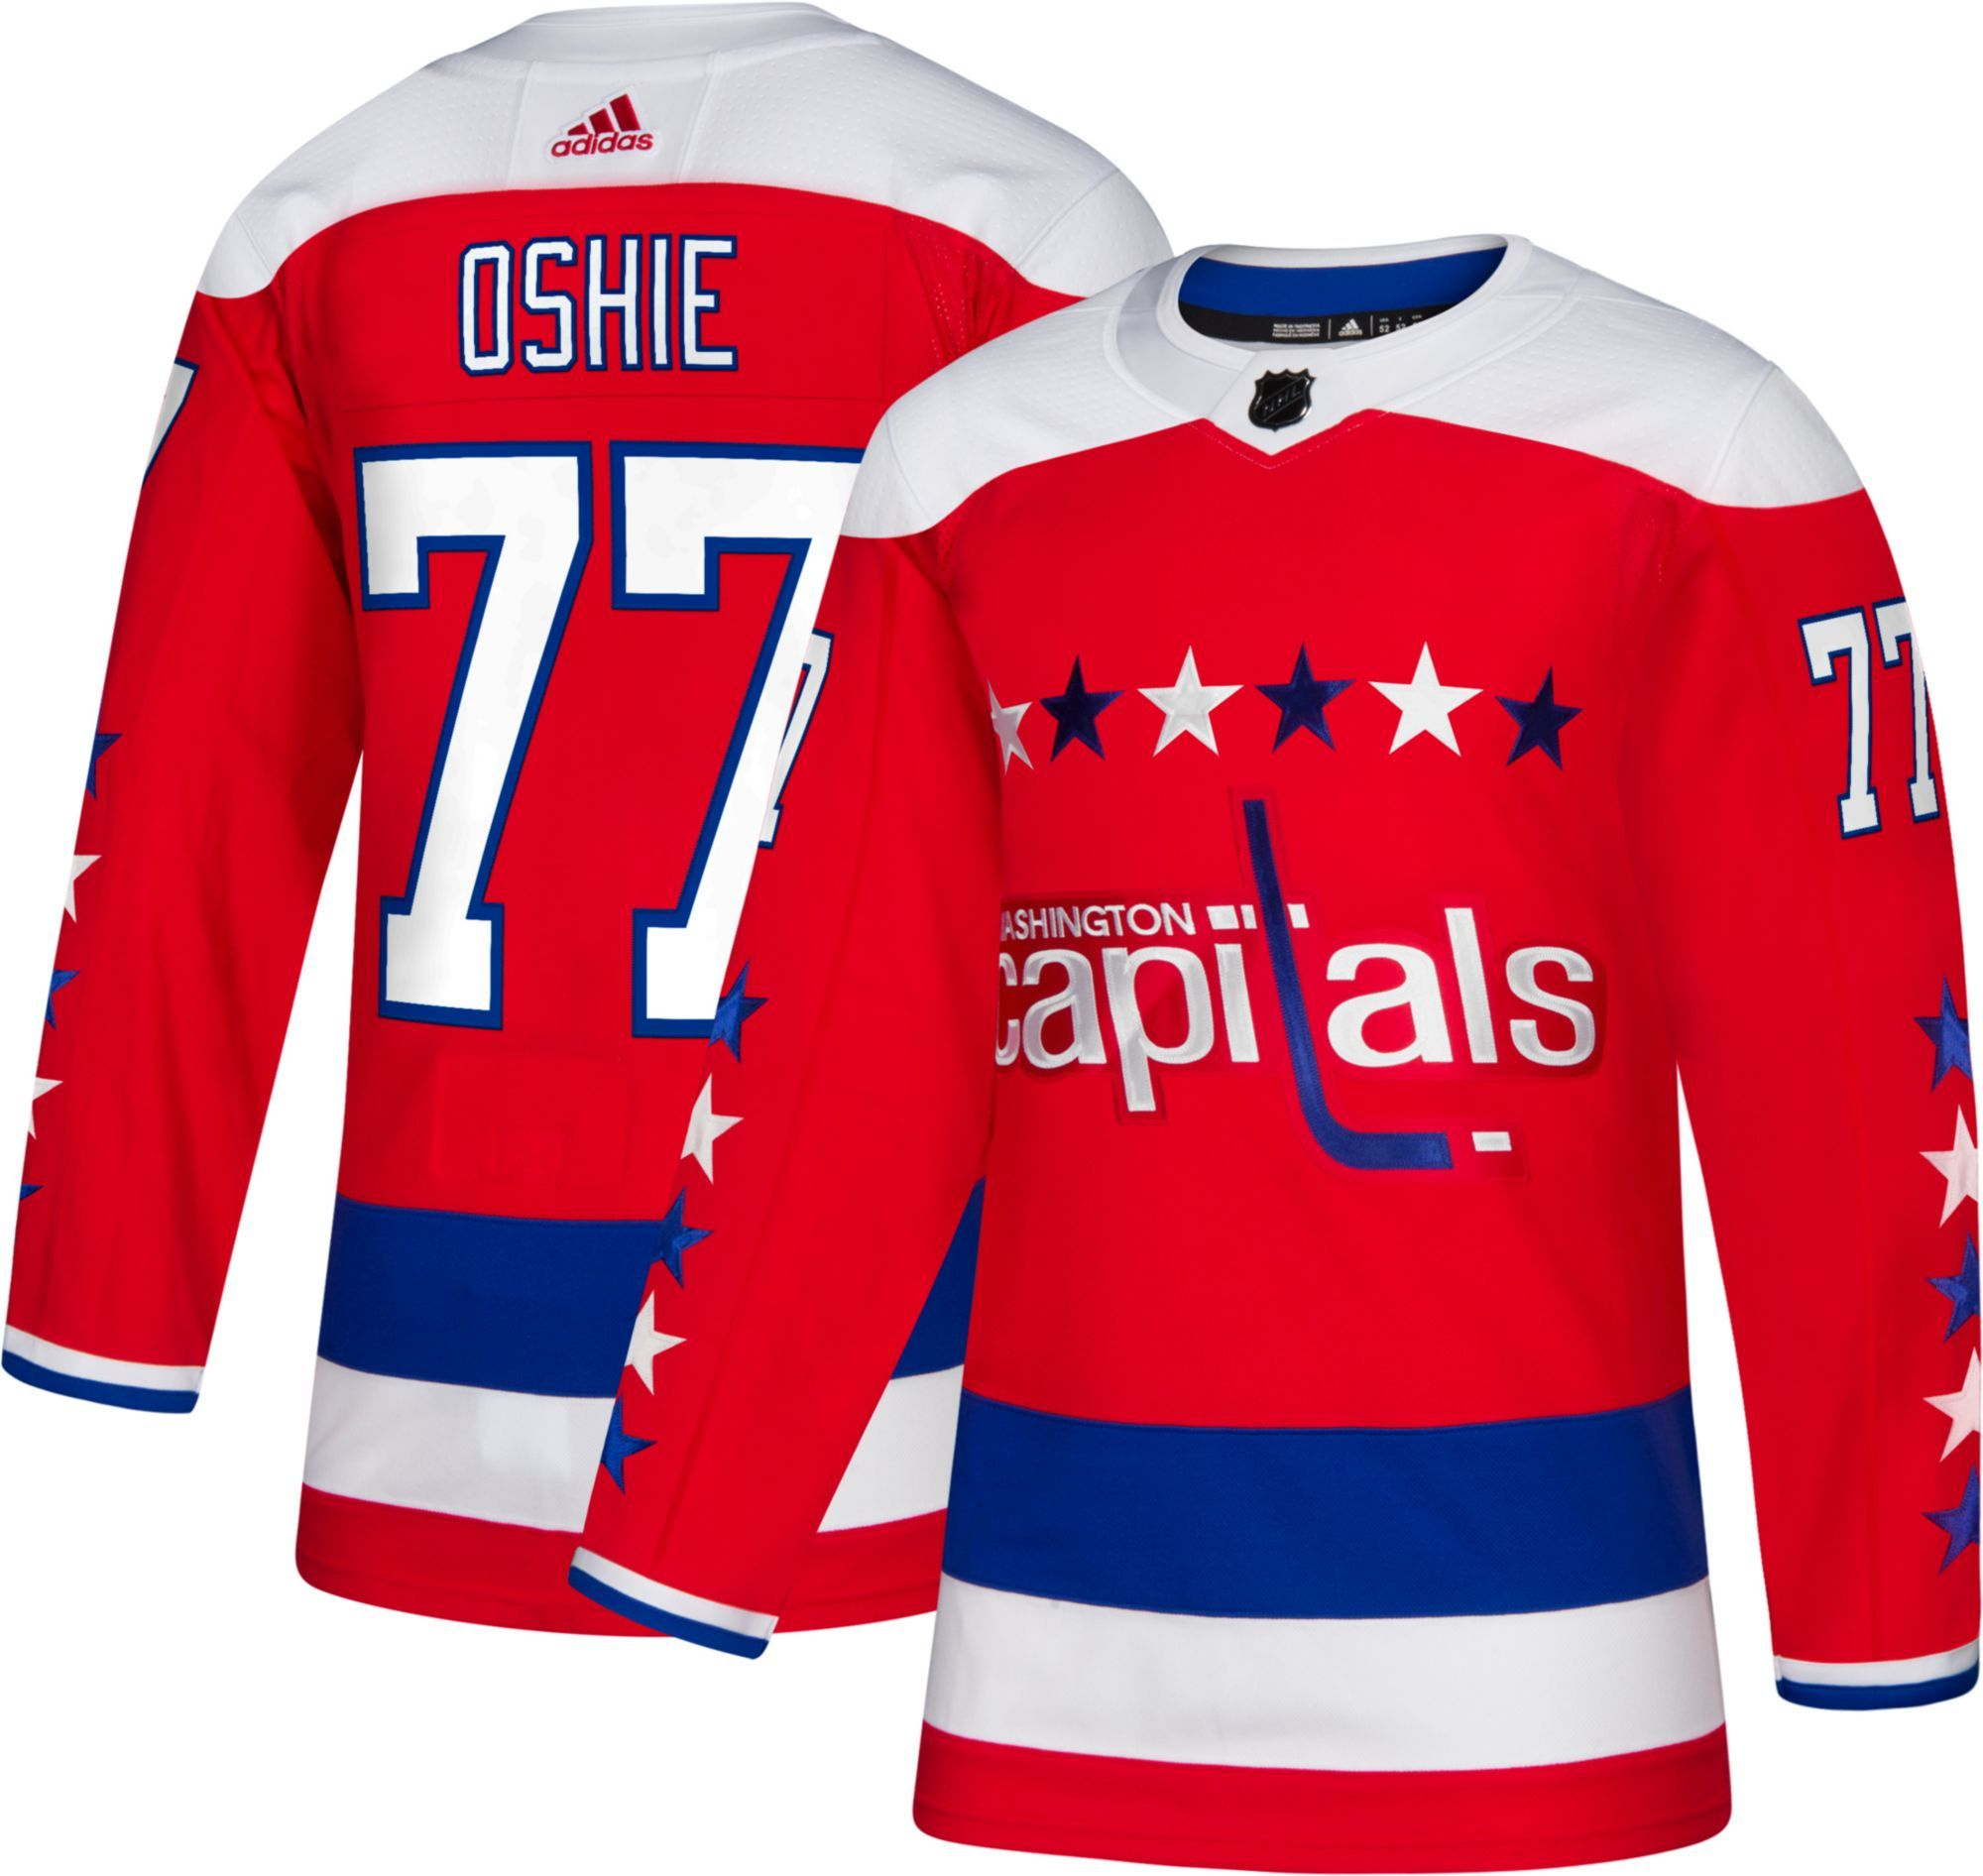 new styles 01064 62bdc adidas Men's Washington Capitals T.J. Oshie #77 Authentic ...